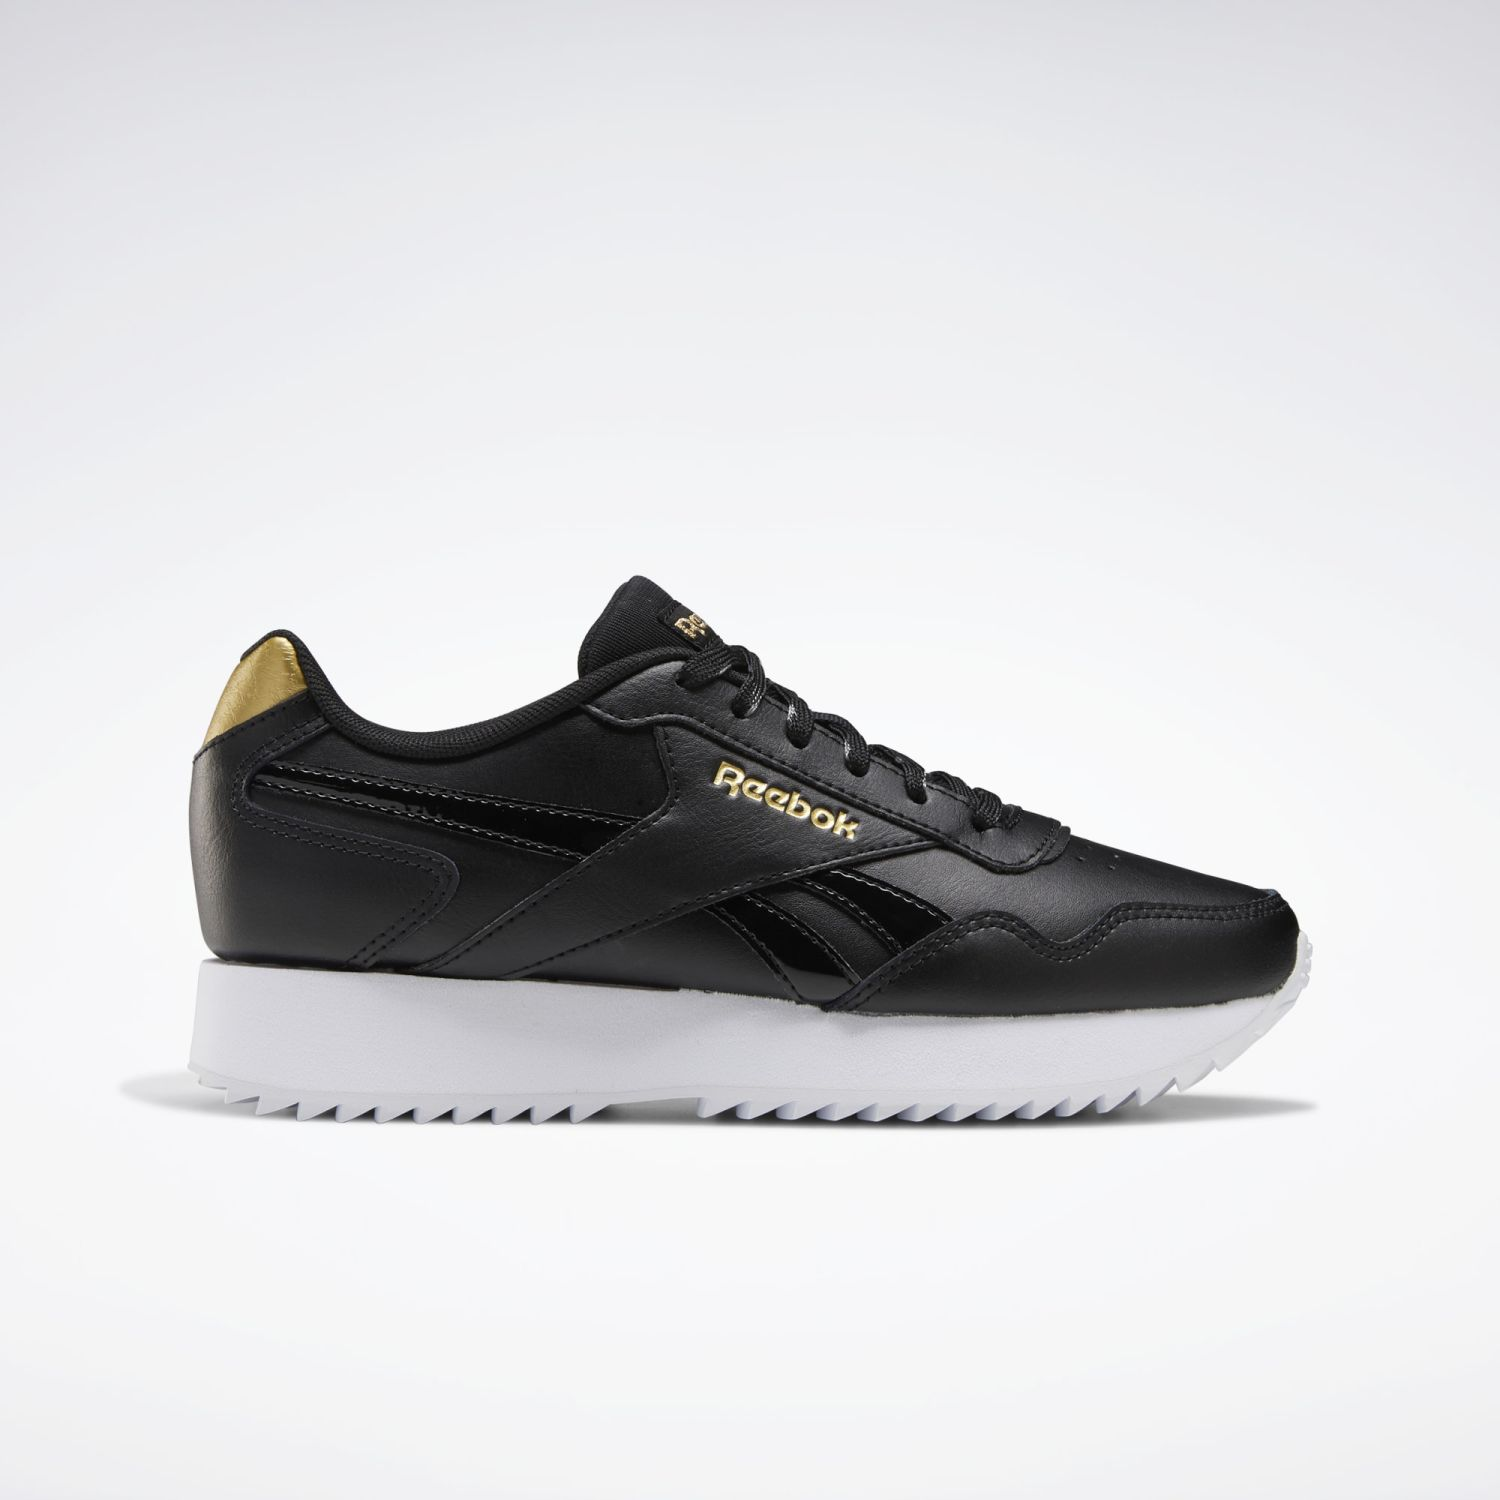 Reebok Reebok Royal Glide Rpldbl Negro / blanco Walking